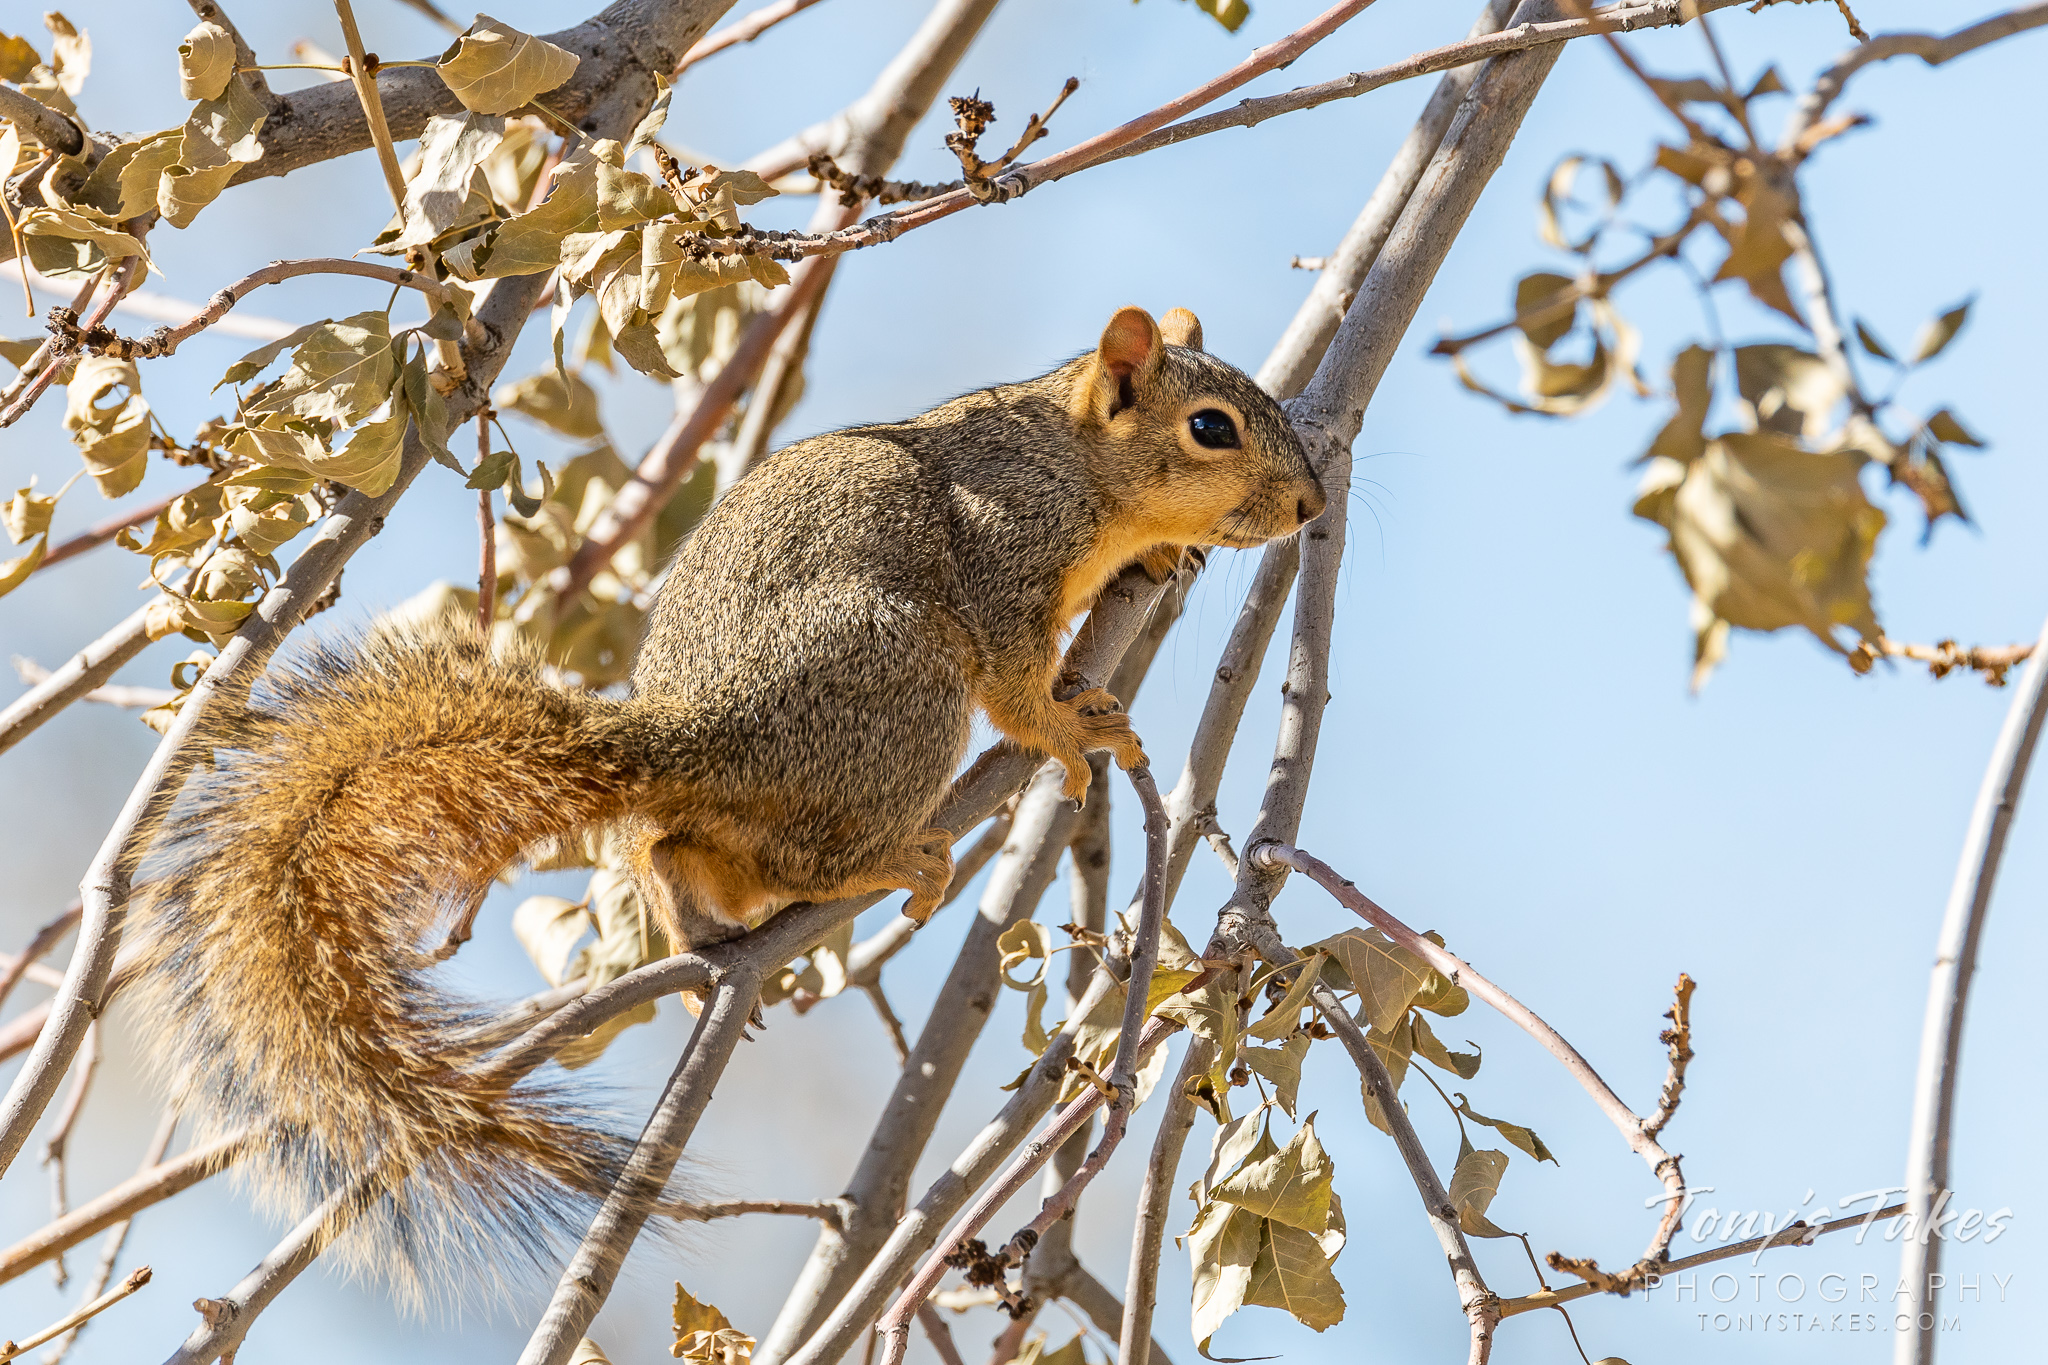 Squirrel hangs out up high